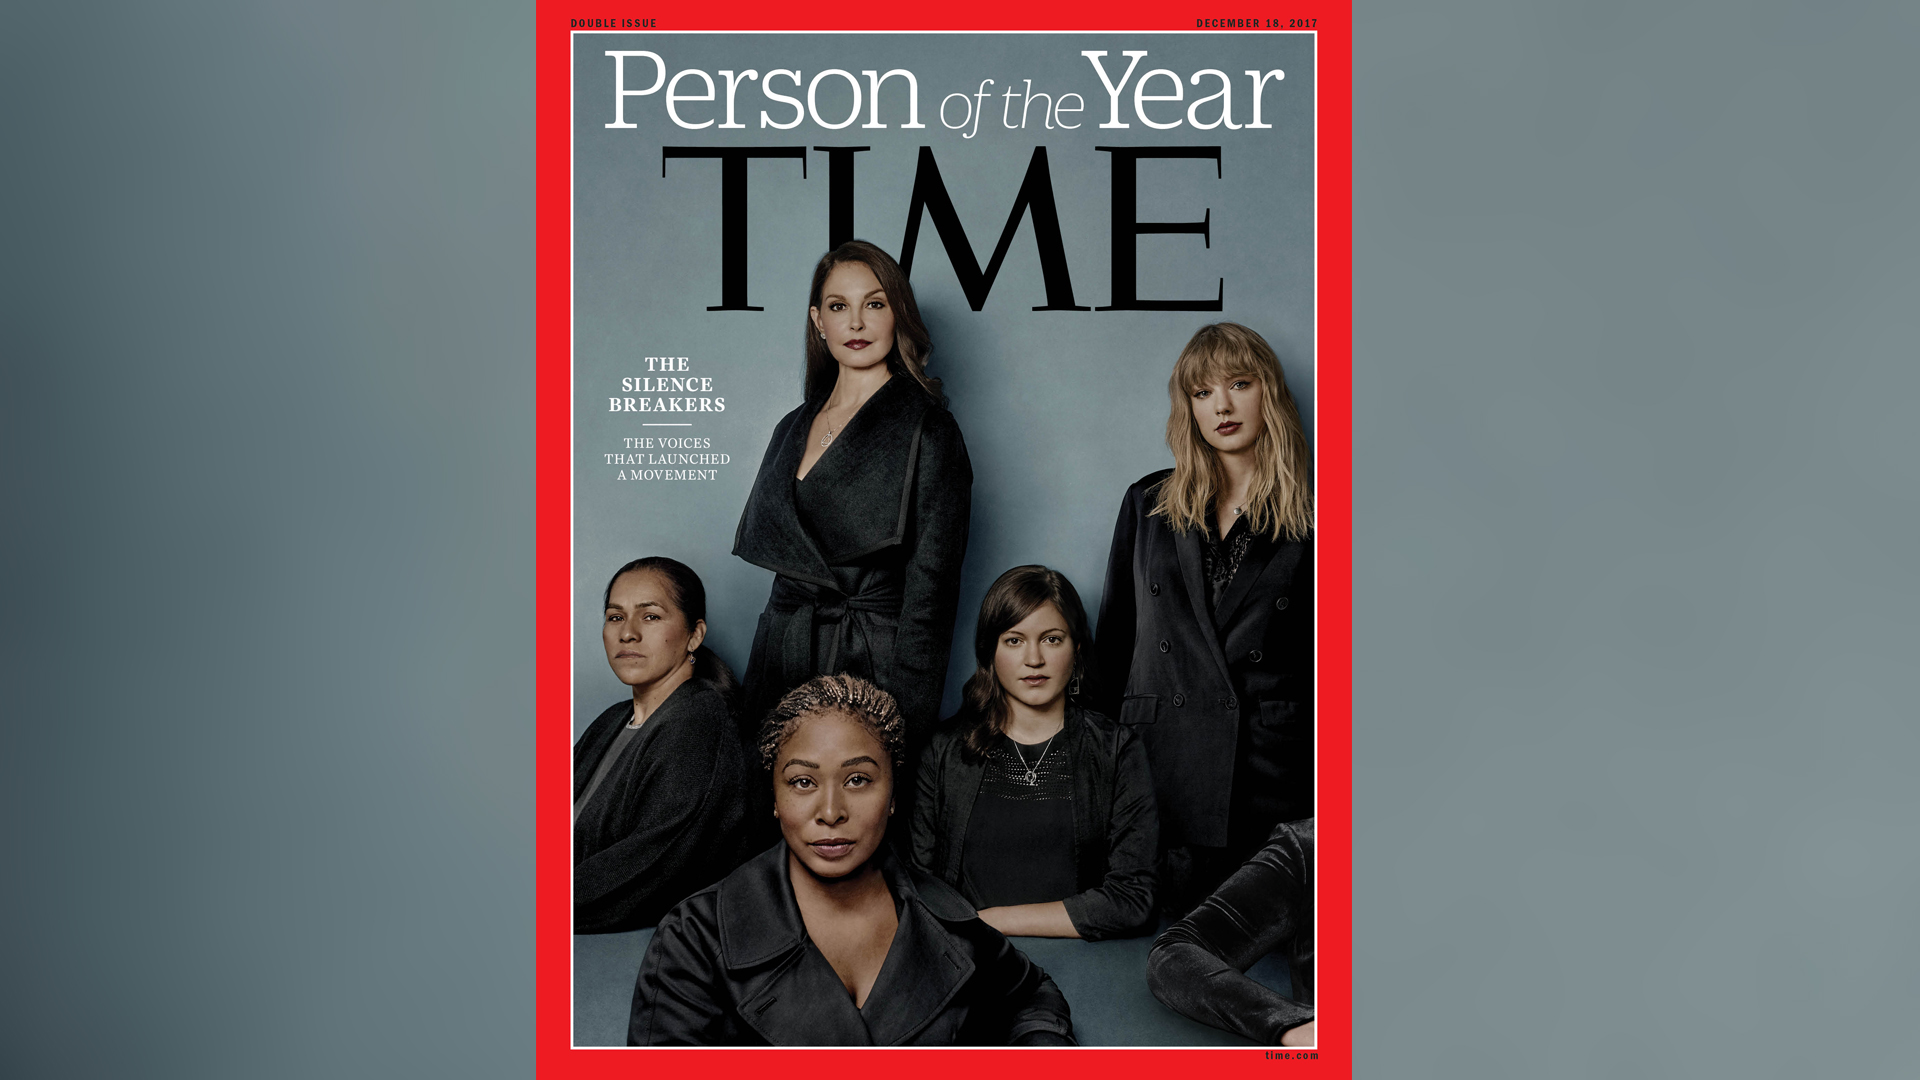 Time magazine cover now